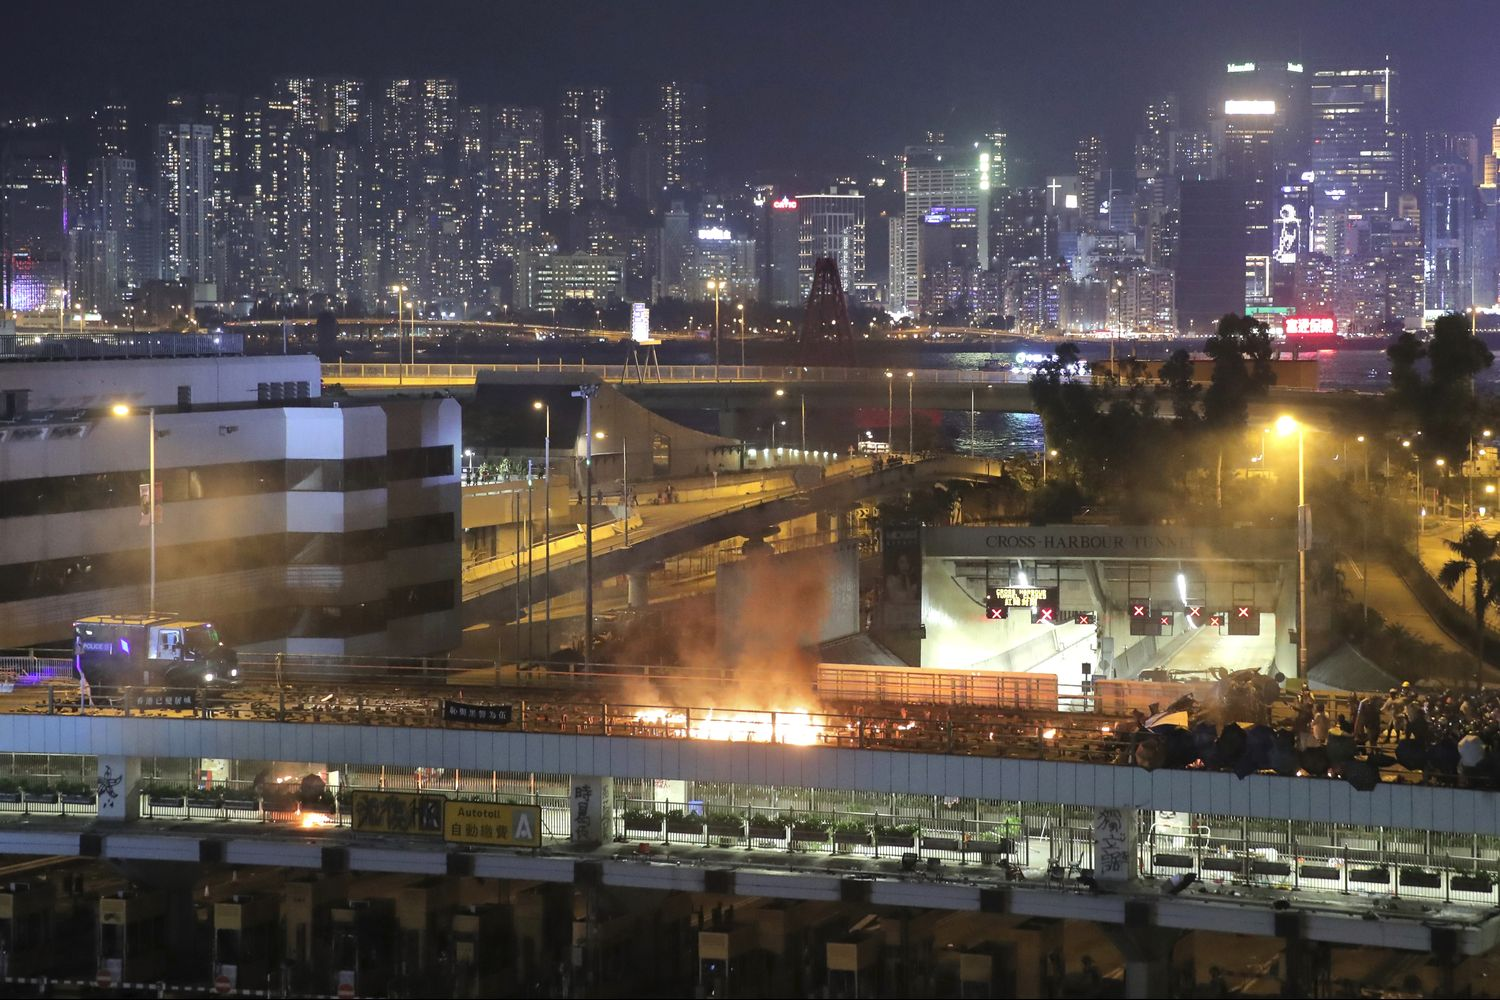 An armored police vehicle (left) approaches a burning barricade built by protestors near the entrance to the Cross Harbour Tunnel in Hong Kong on Sunday. (AP photo)